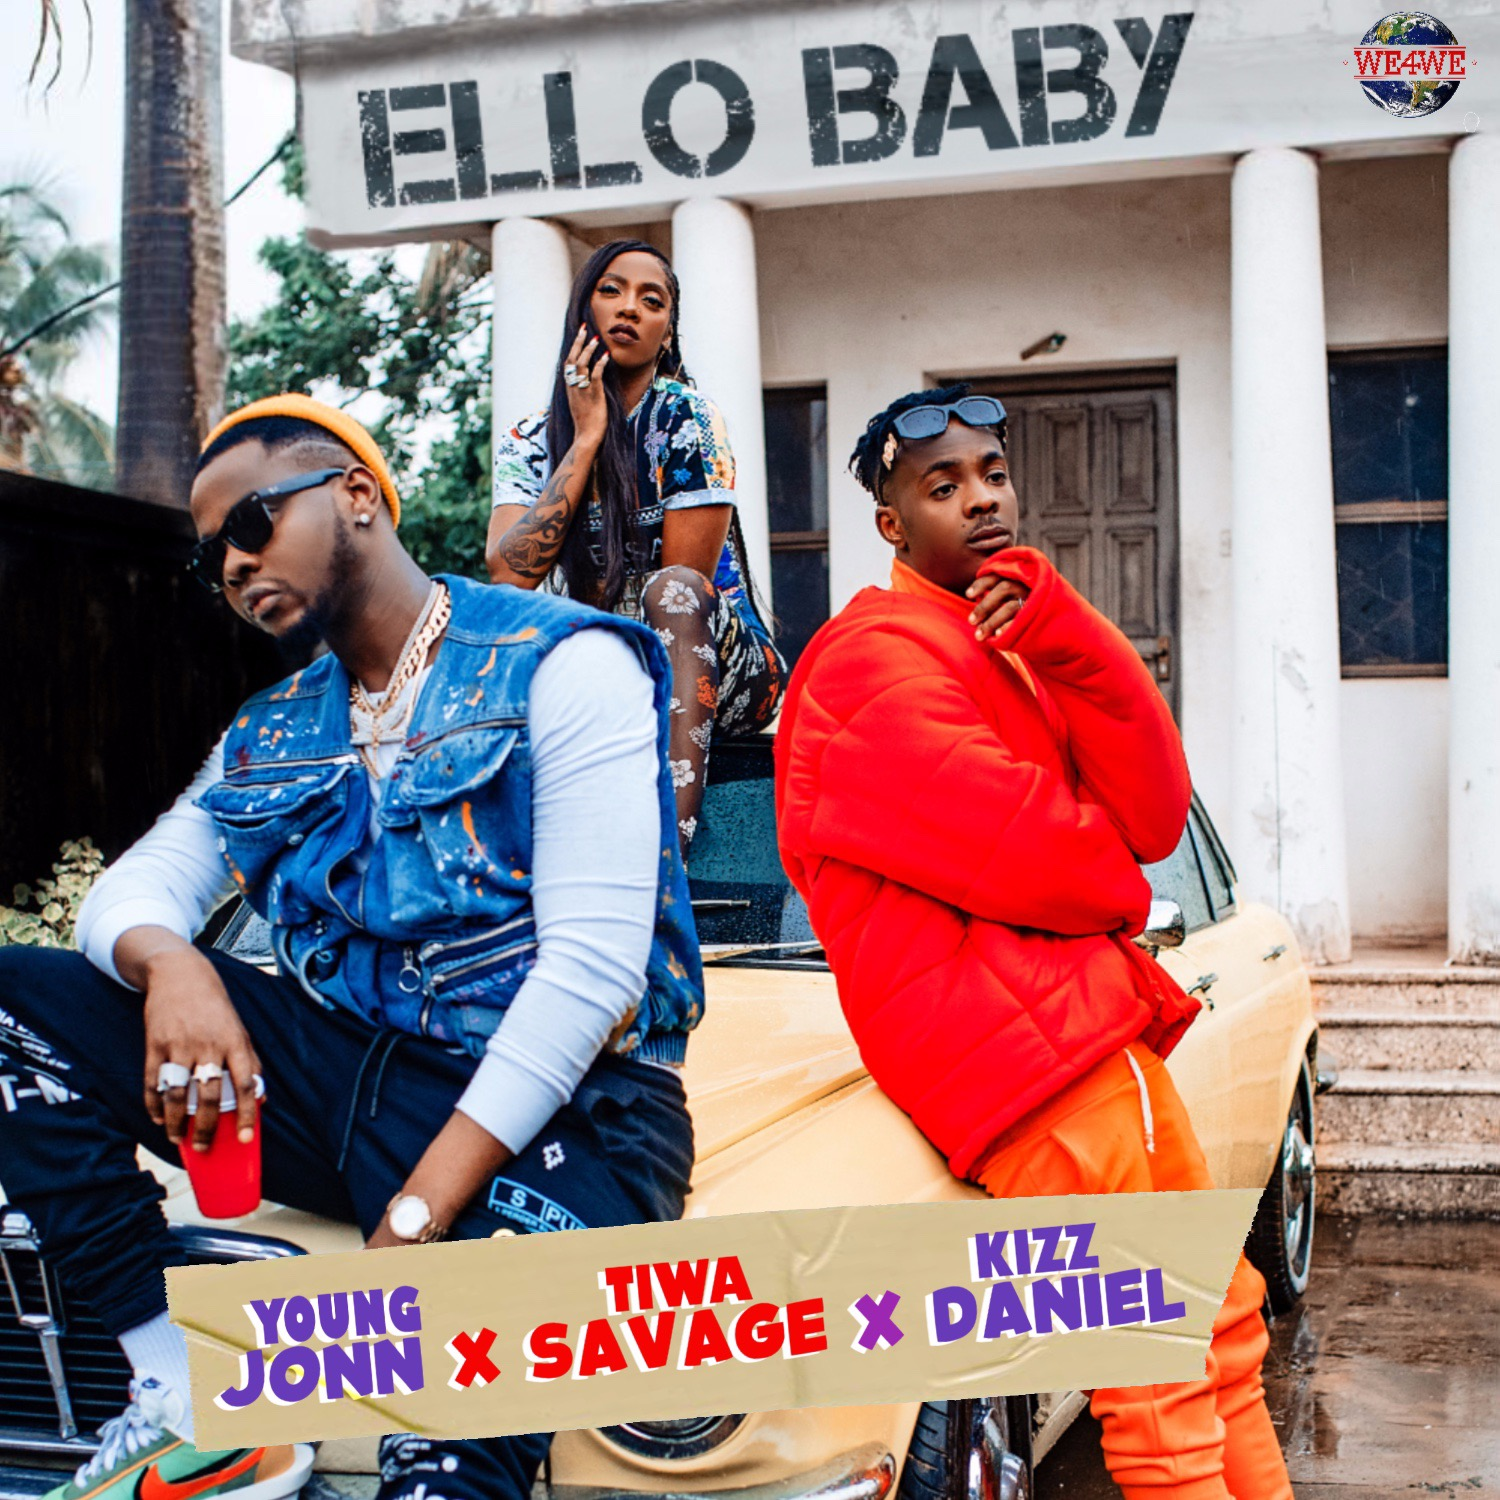 Young John x Tiwa Savage x Kizz Daniel Ello Baby Mp3 Download